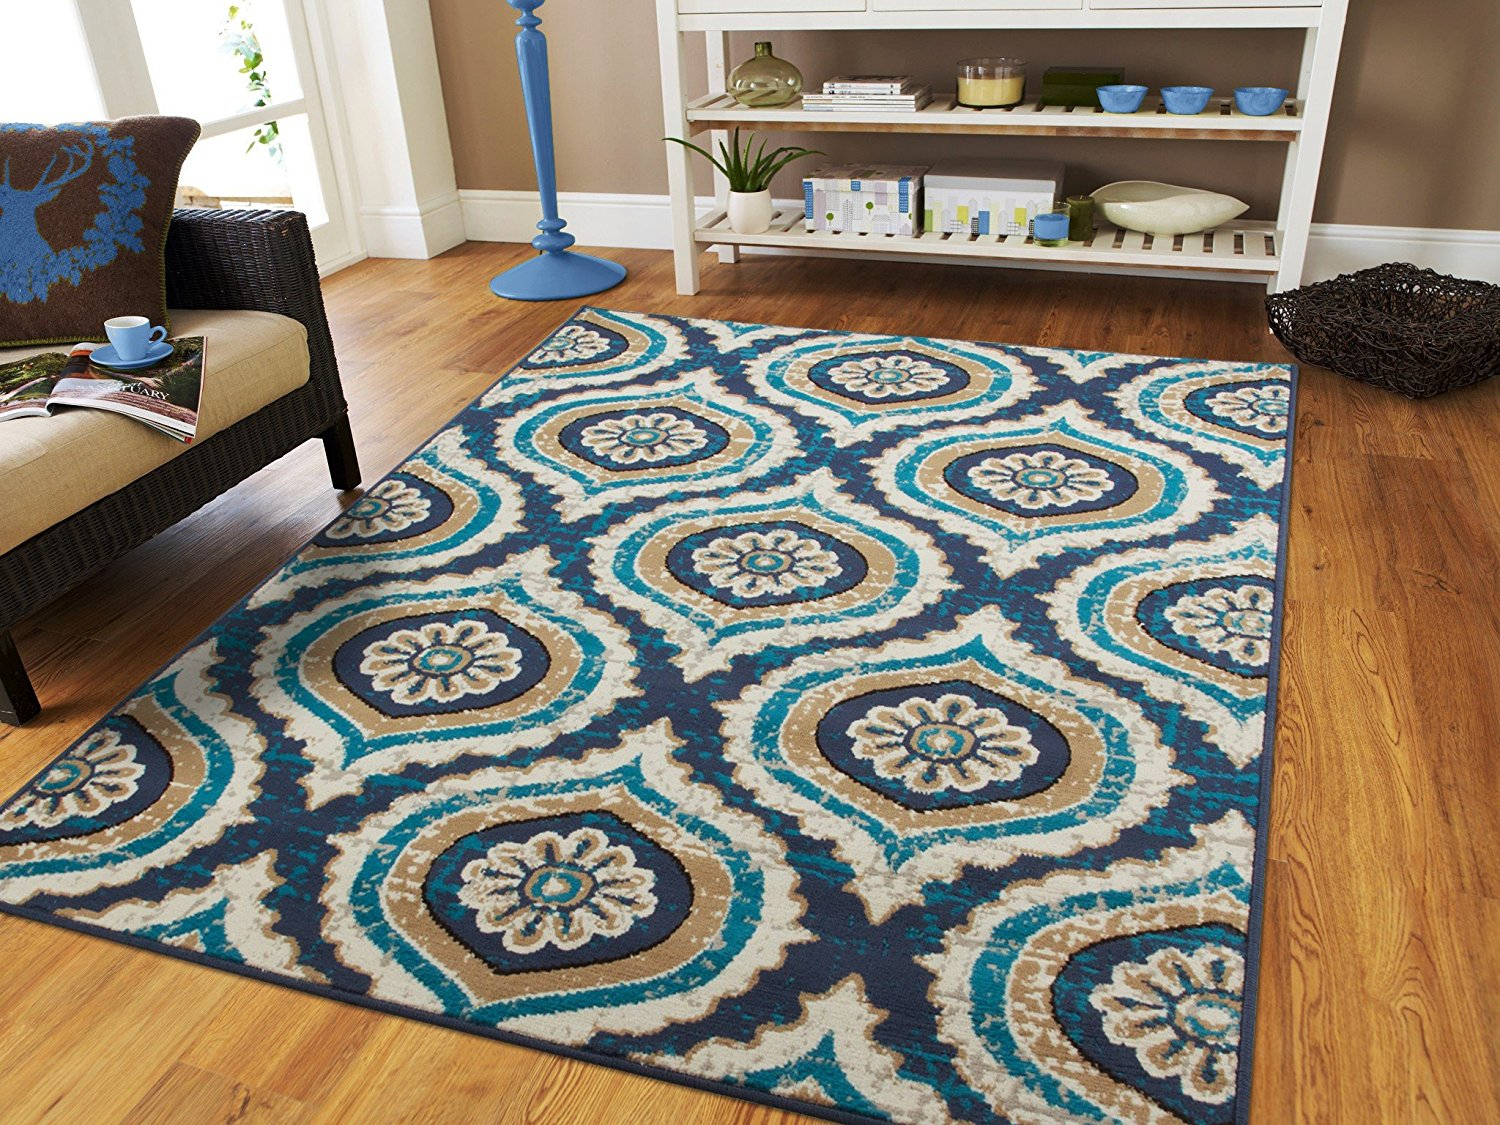 Cheap Area Rugs Blue And Beige Find Area Rugs Blue And